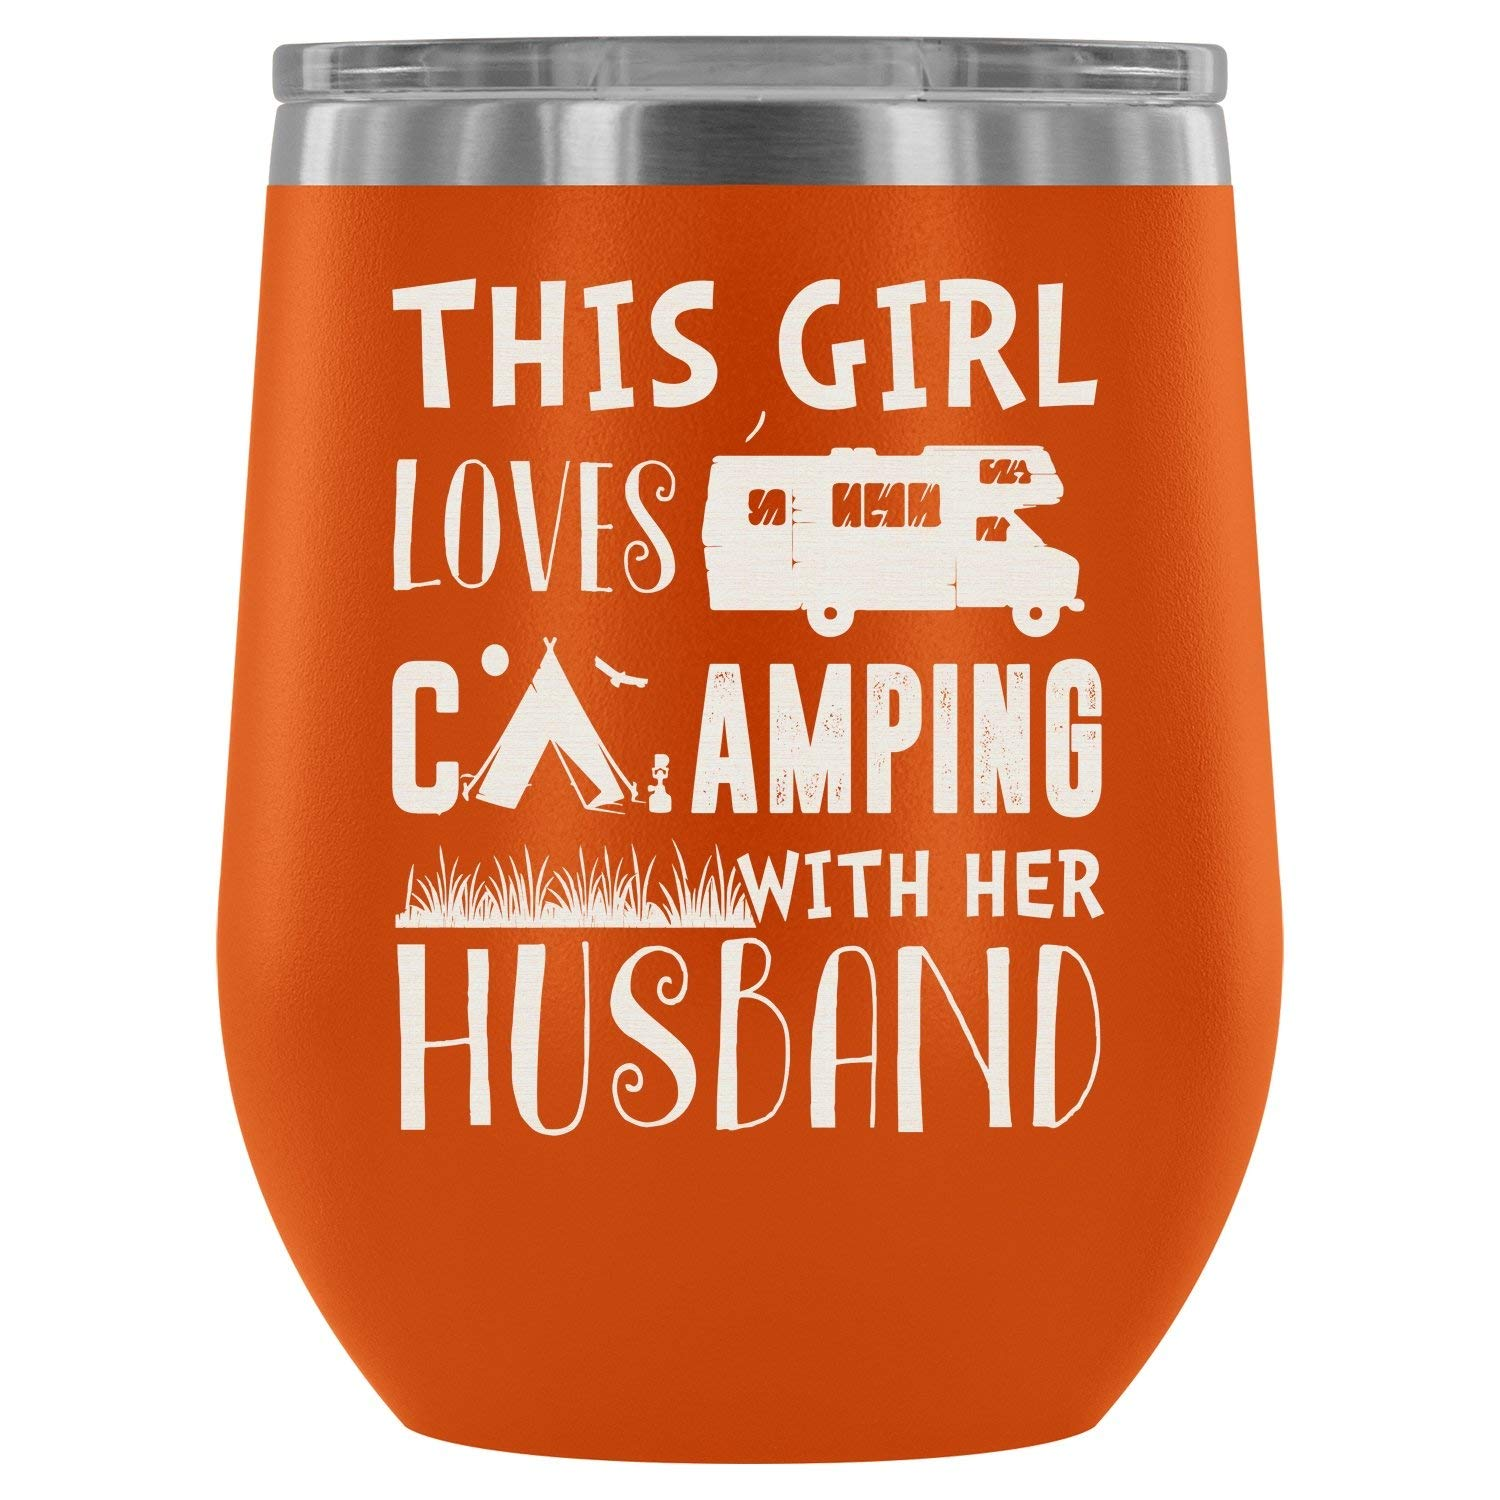 Stainless Steel Tumbler Cup with Lids for Wine, This Girl Love Camping With Her Husband Wine Tumbler, Camping Girl Vacuum Insulated Wine Tumbler (Wine Tumbler 12Oz - Orange)